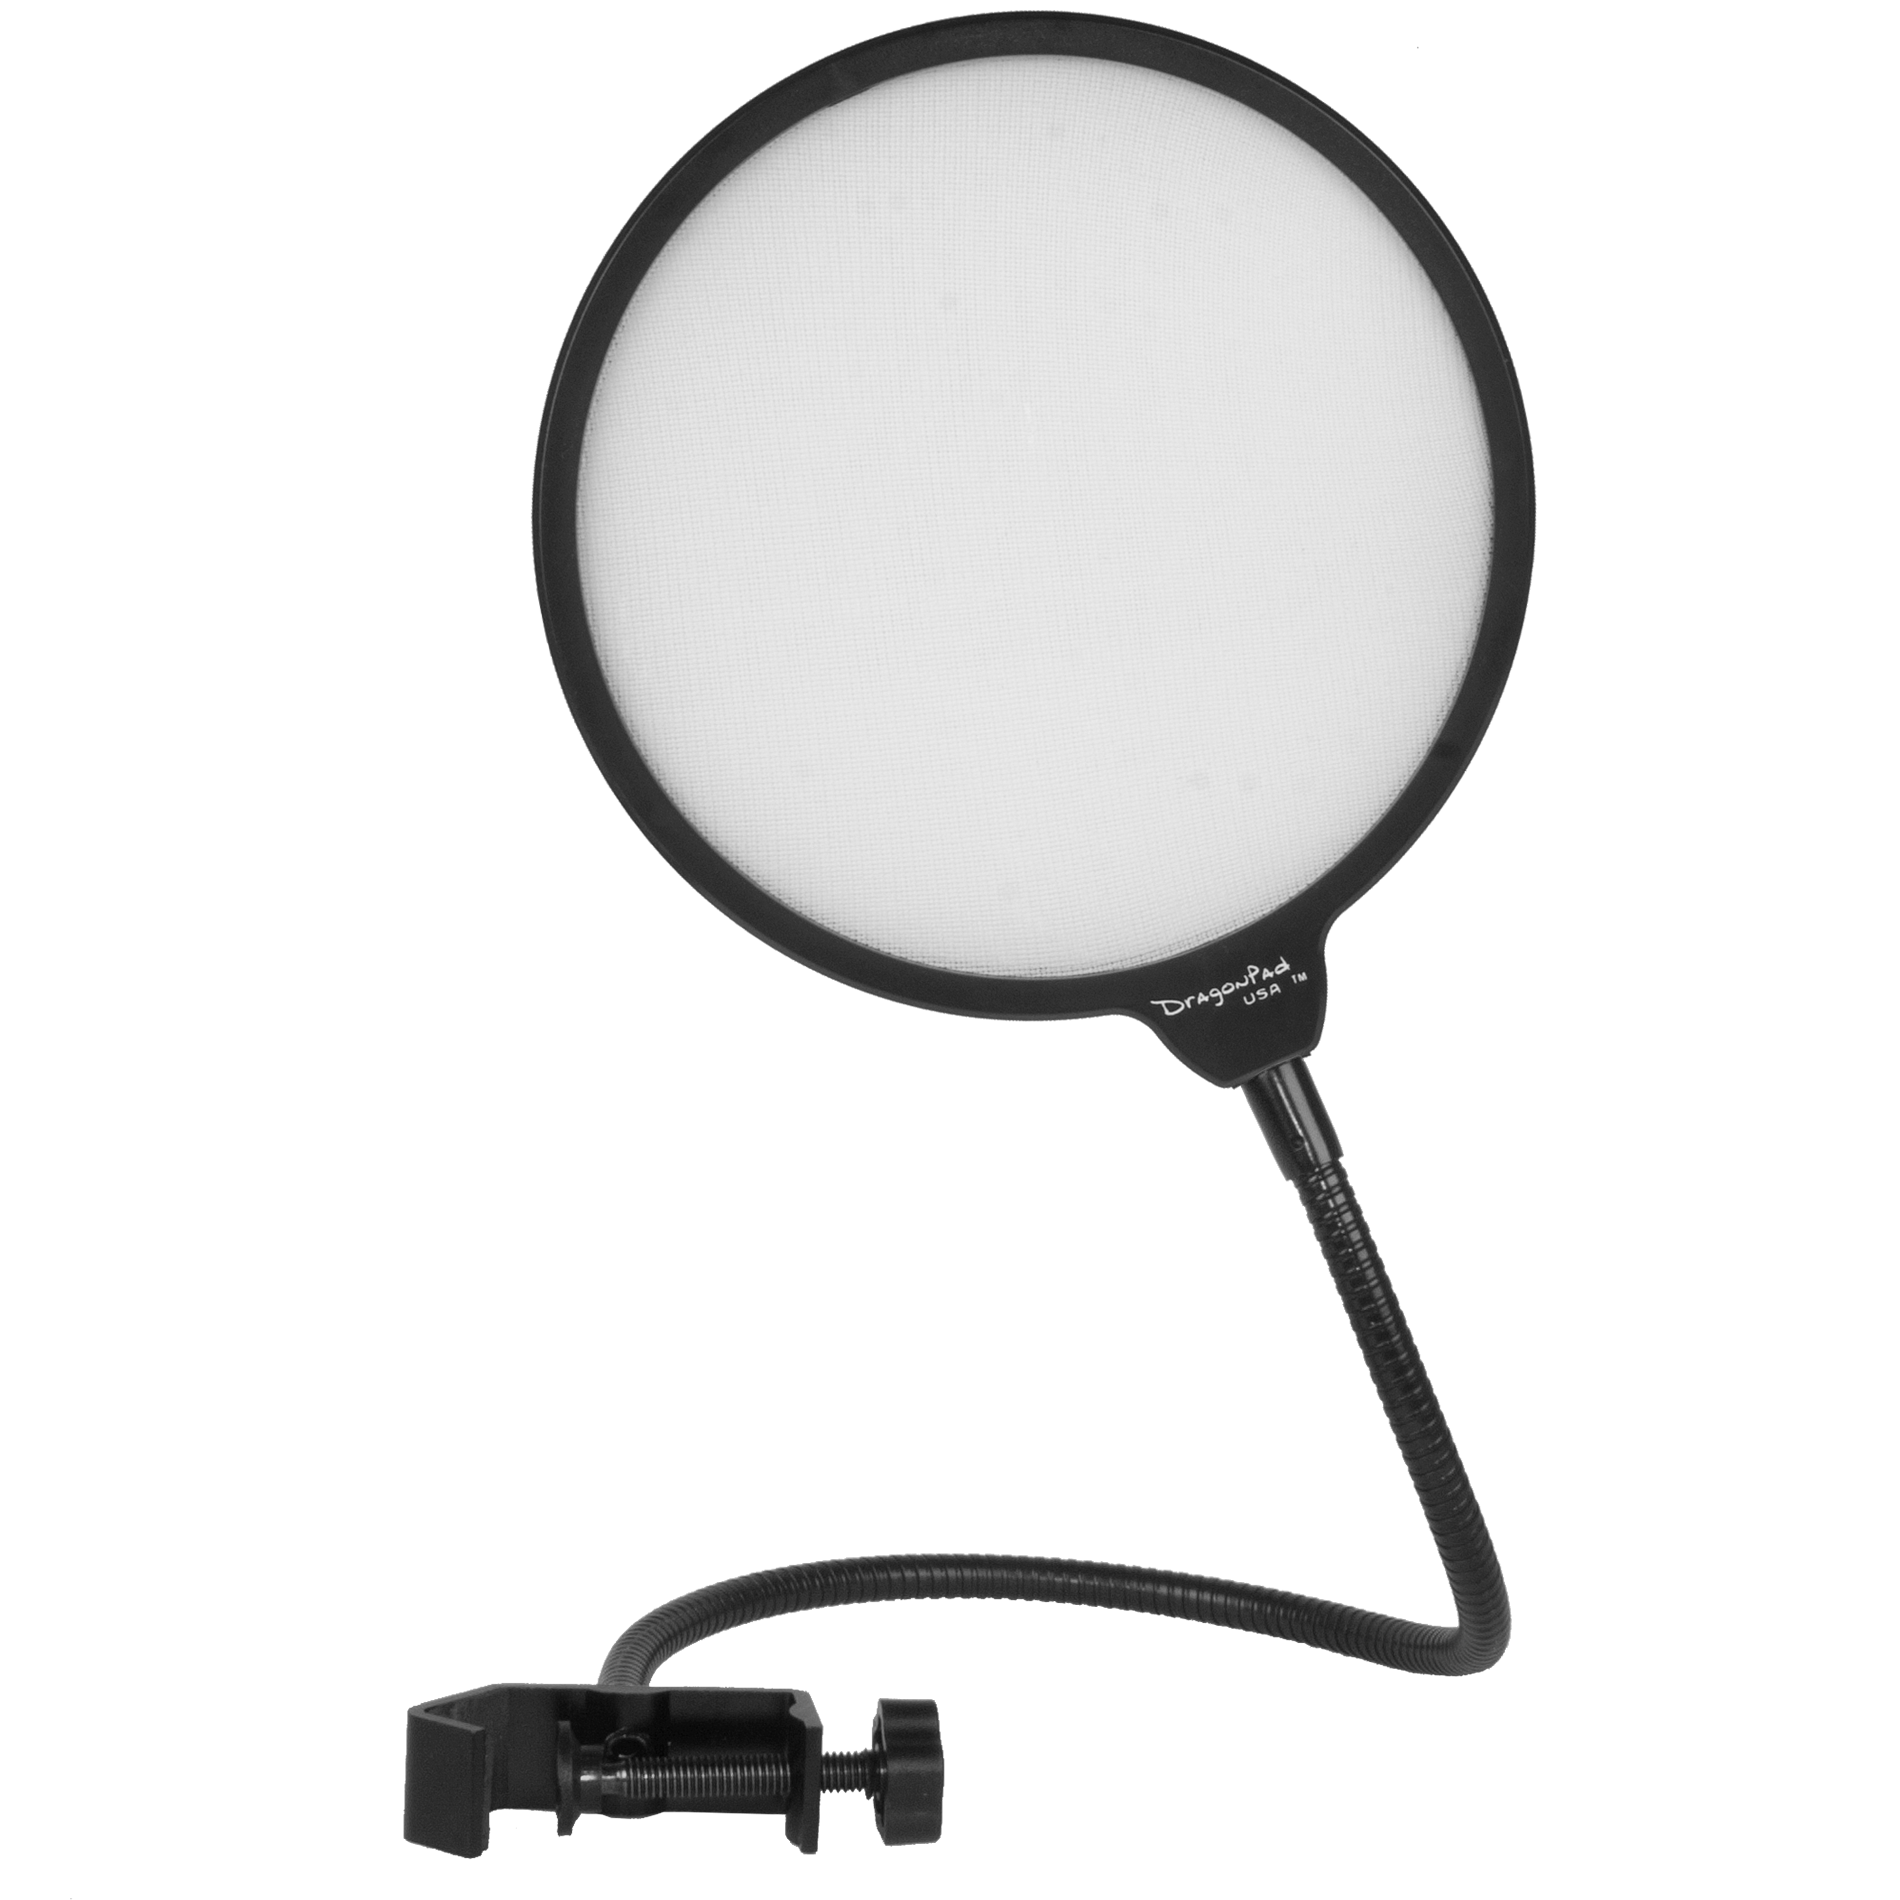 "DragonPad USA 6"" Microphone Studio Pop Filter with Clamp - V2.0 - Black/White"